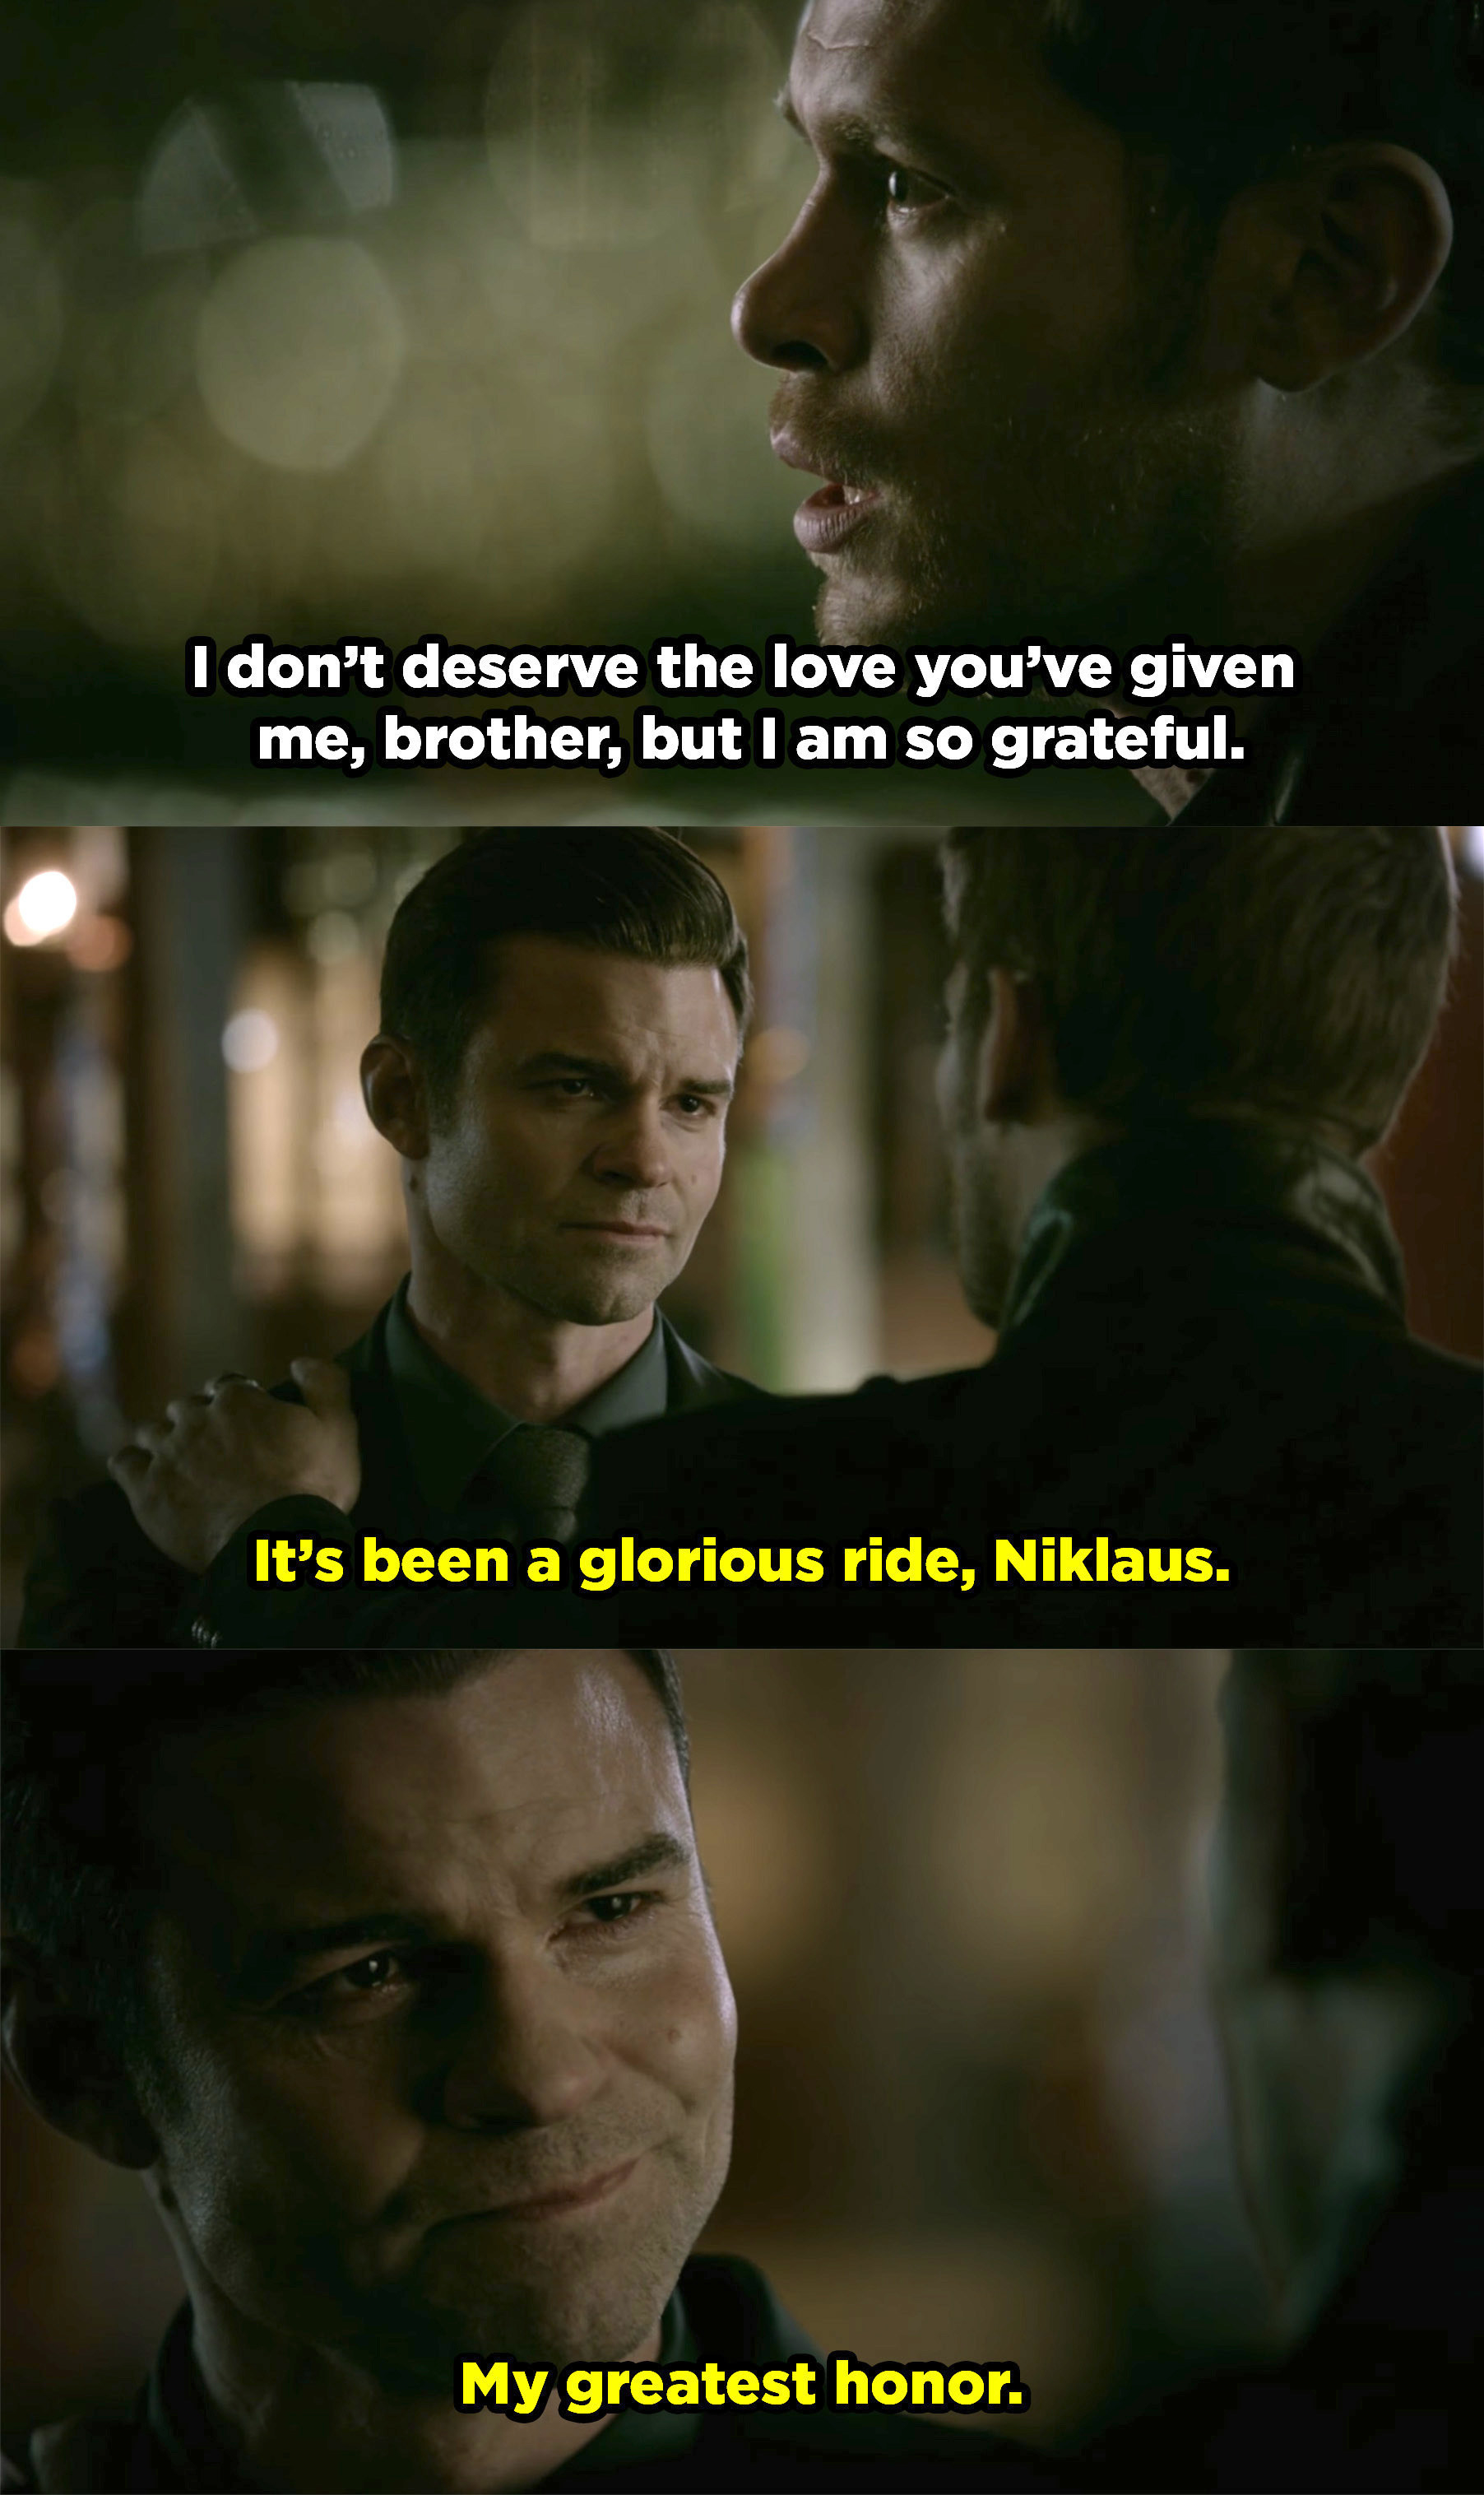 Klaus and Elijah thanking each other for their journeys before killing each other.